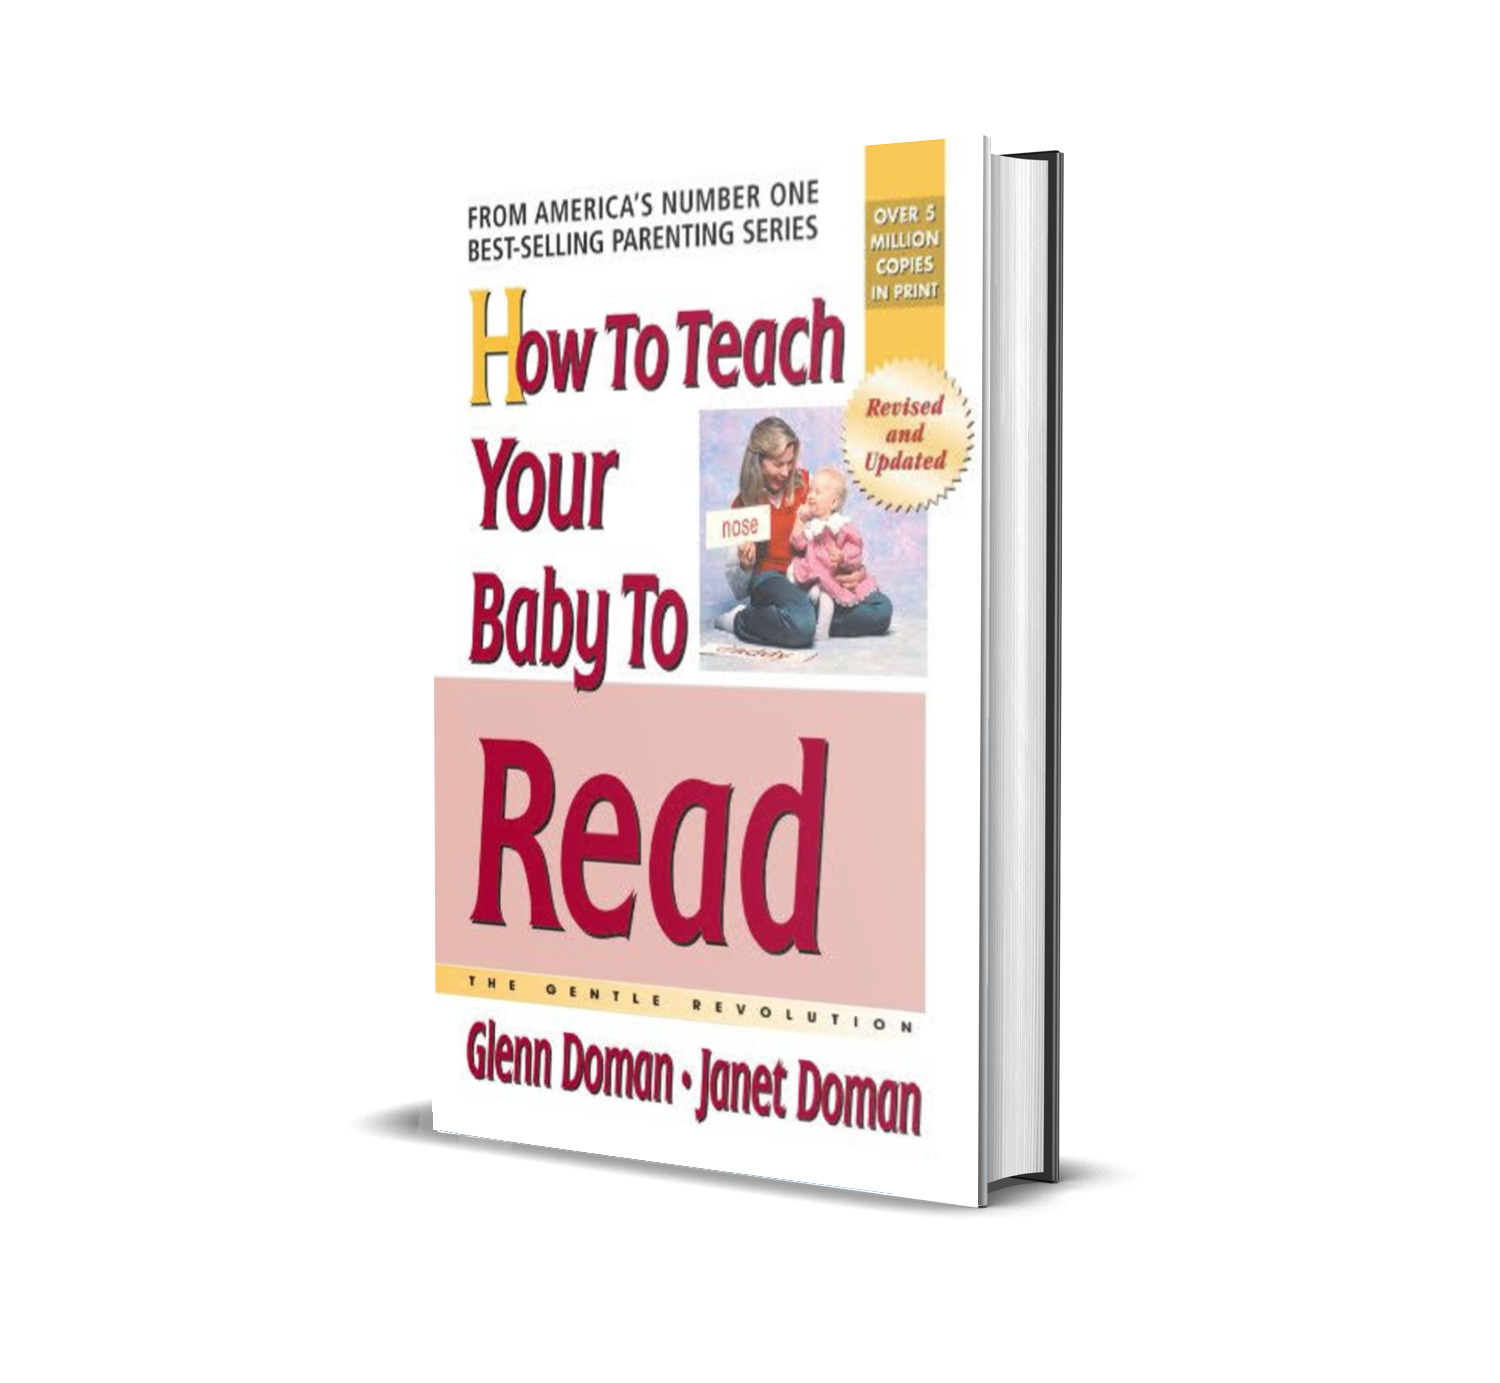 How to teach your baby to read- Glenn Doman, Janet Doman